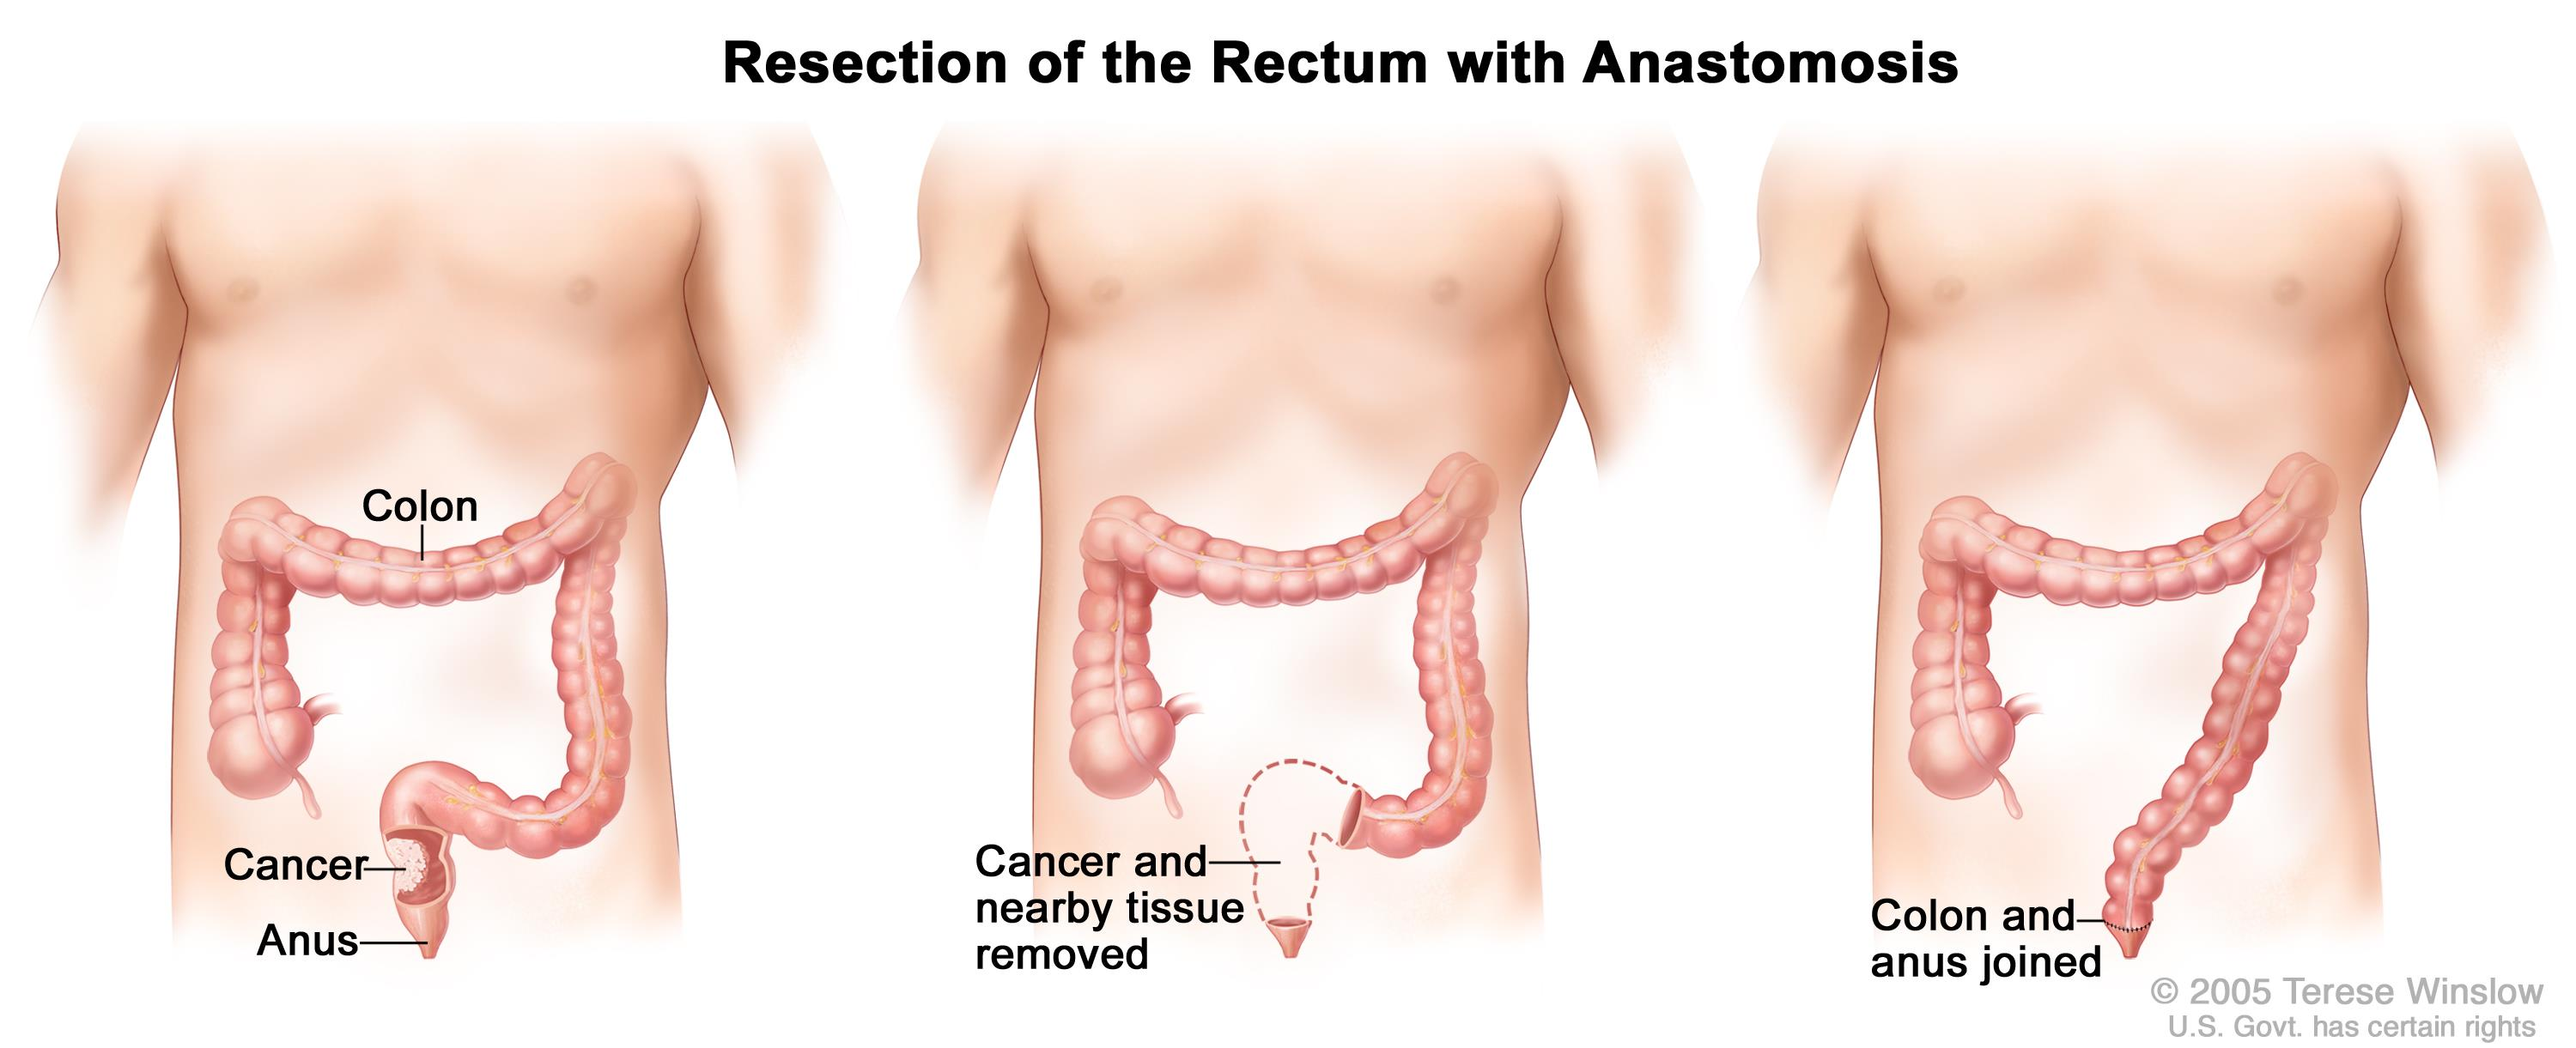 Does anal sex cause colon cancer